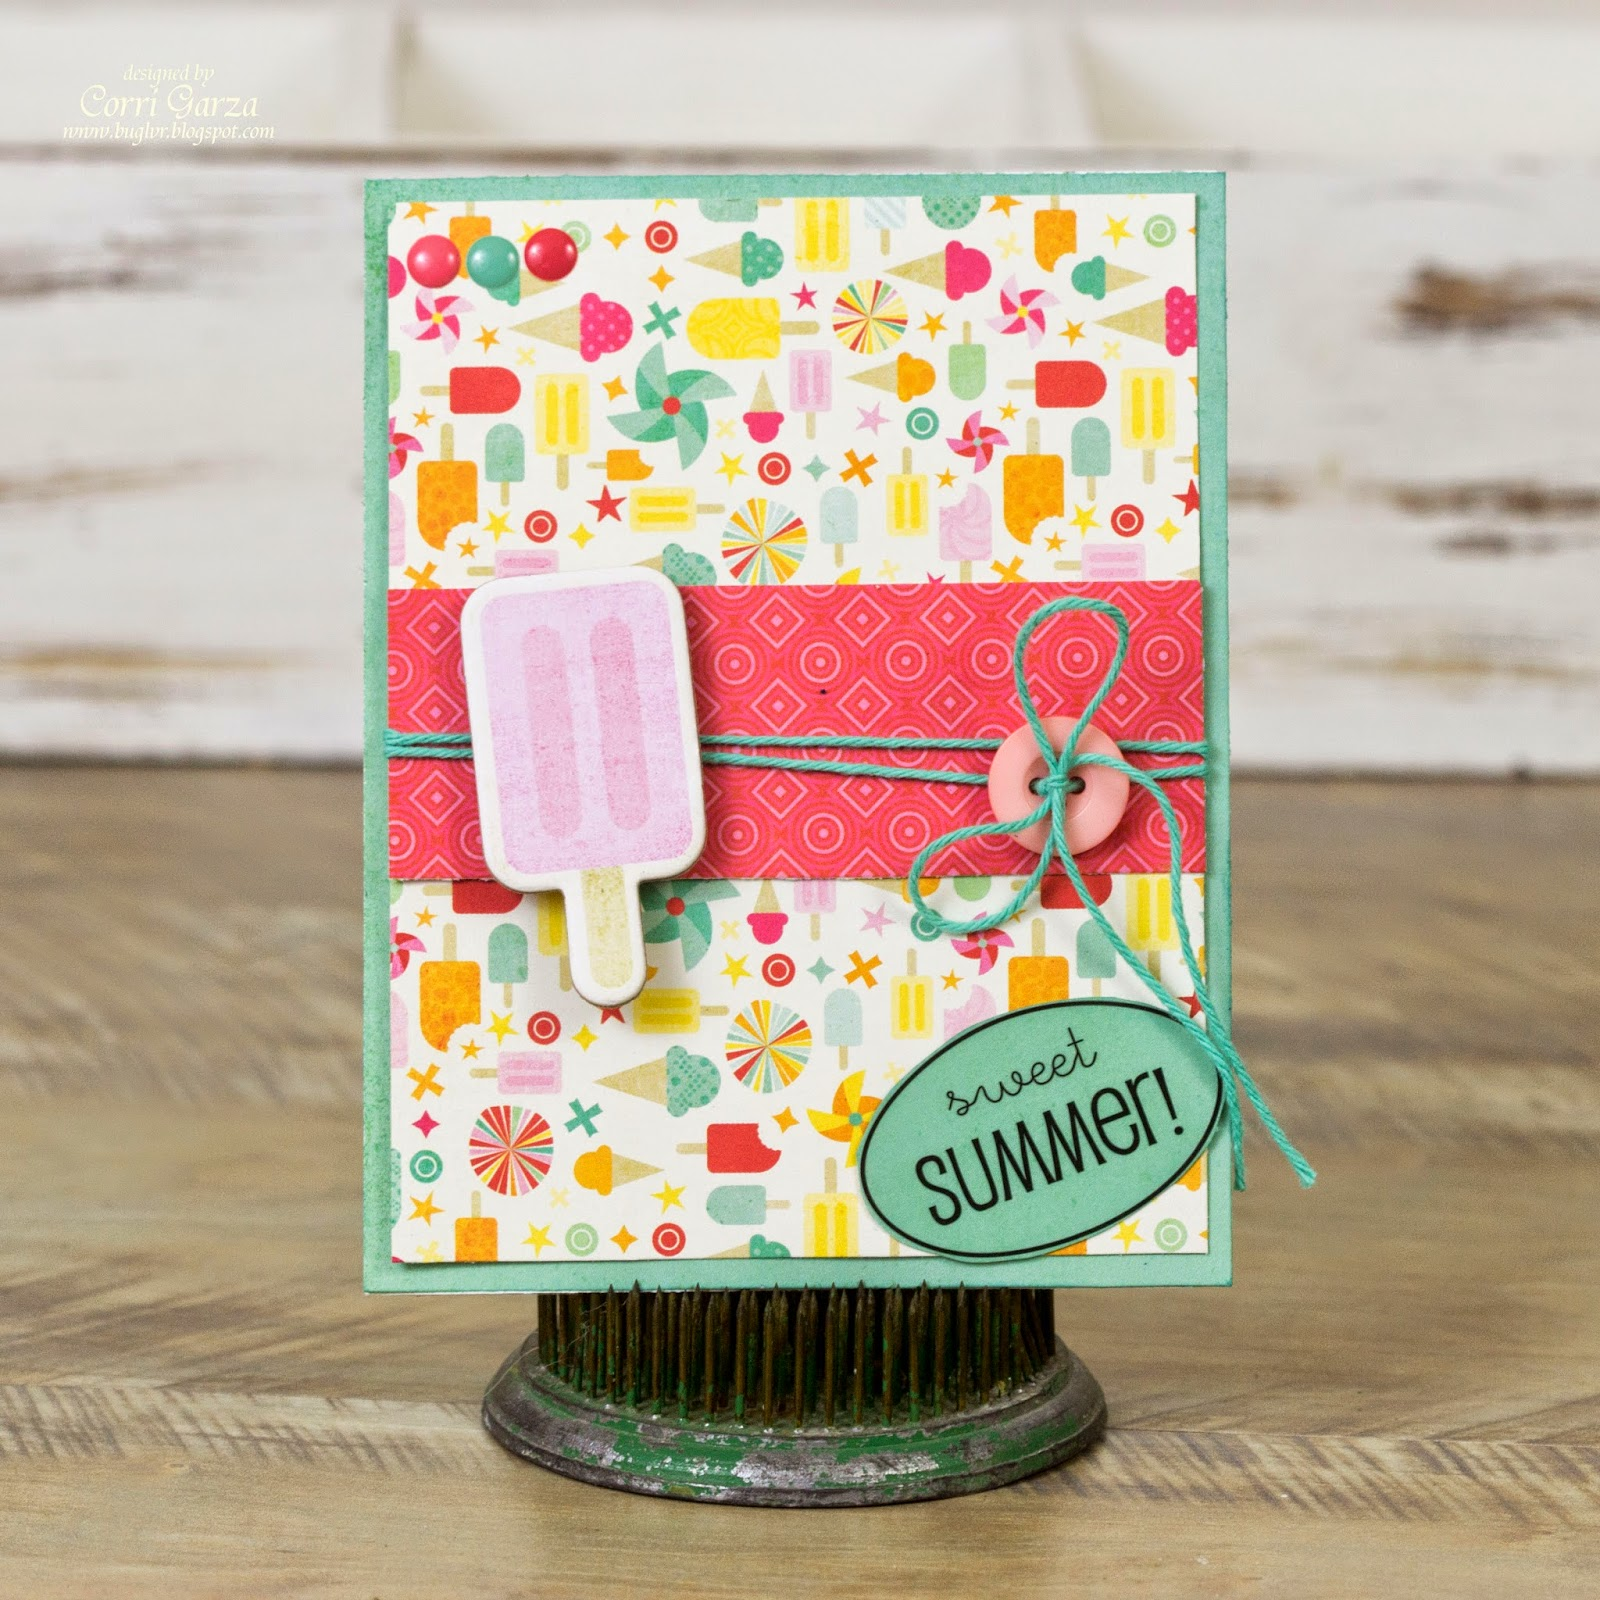 SRM Stickers Blog - 1 Sticker - 4 Cards by Corri - #A2 #clear box #cards #gift set #stickers #summer